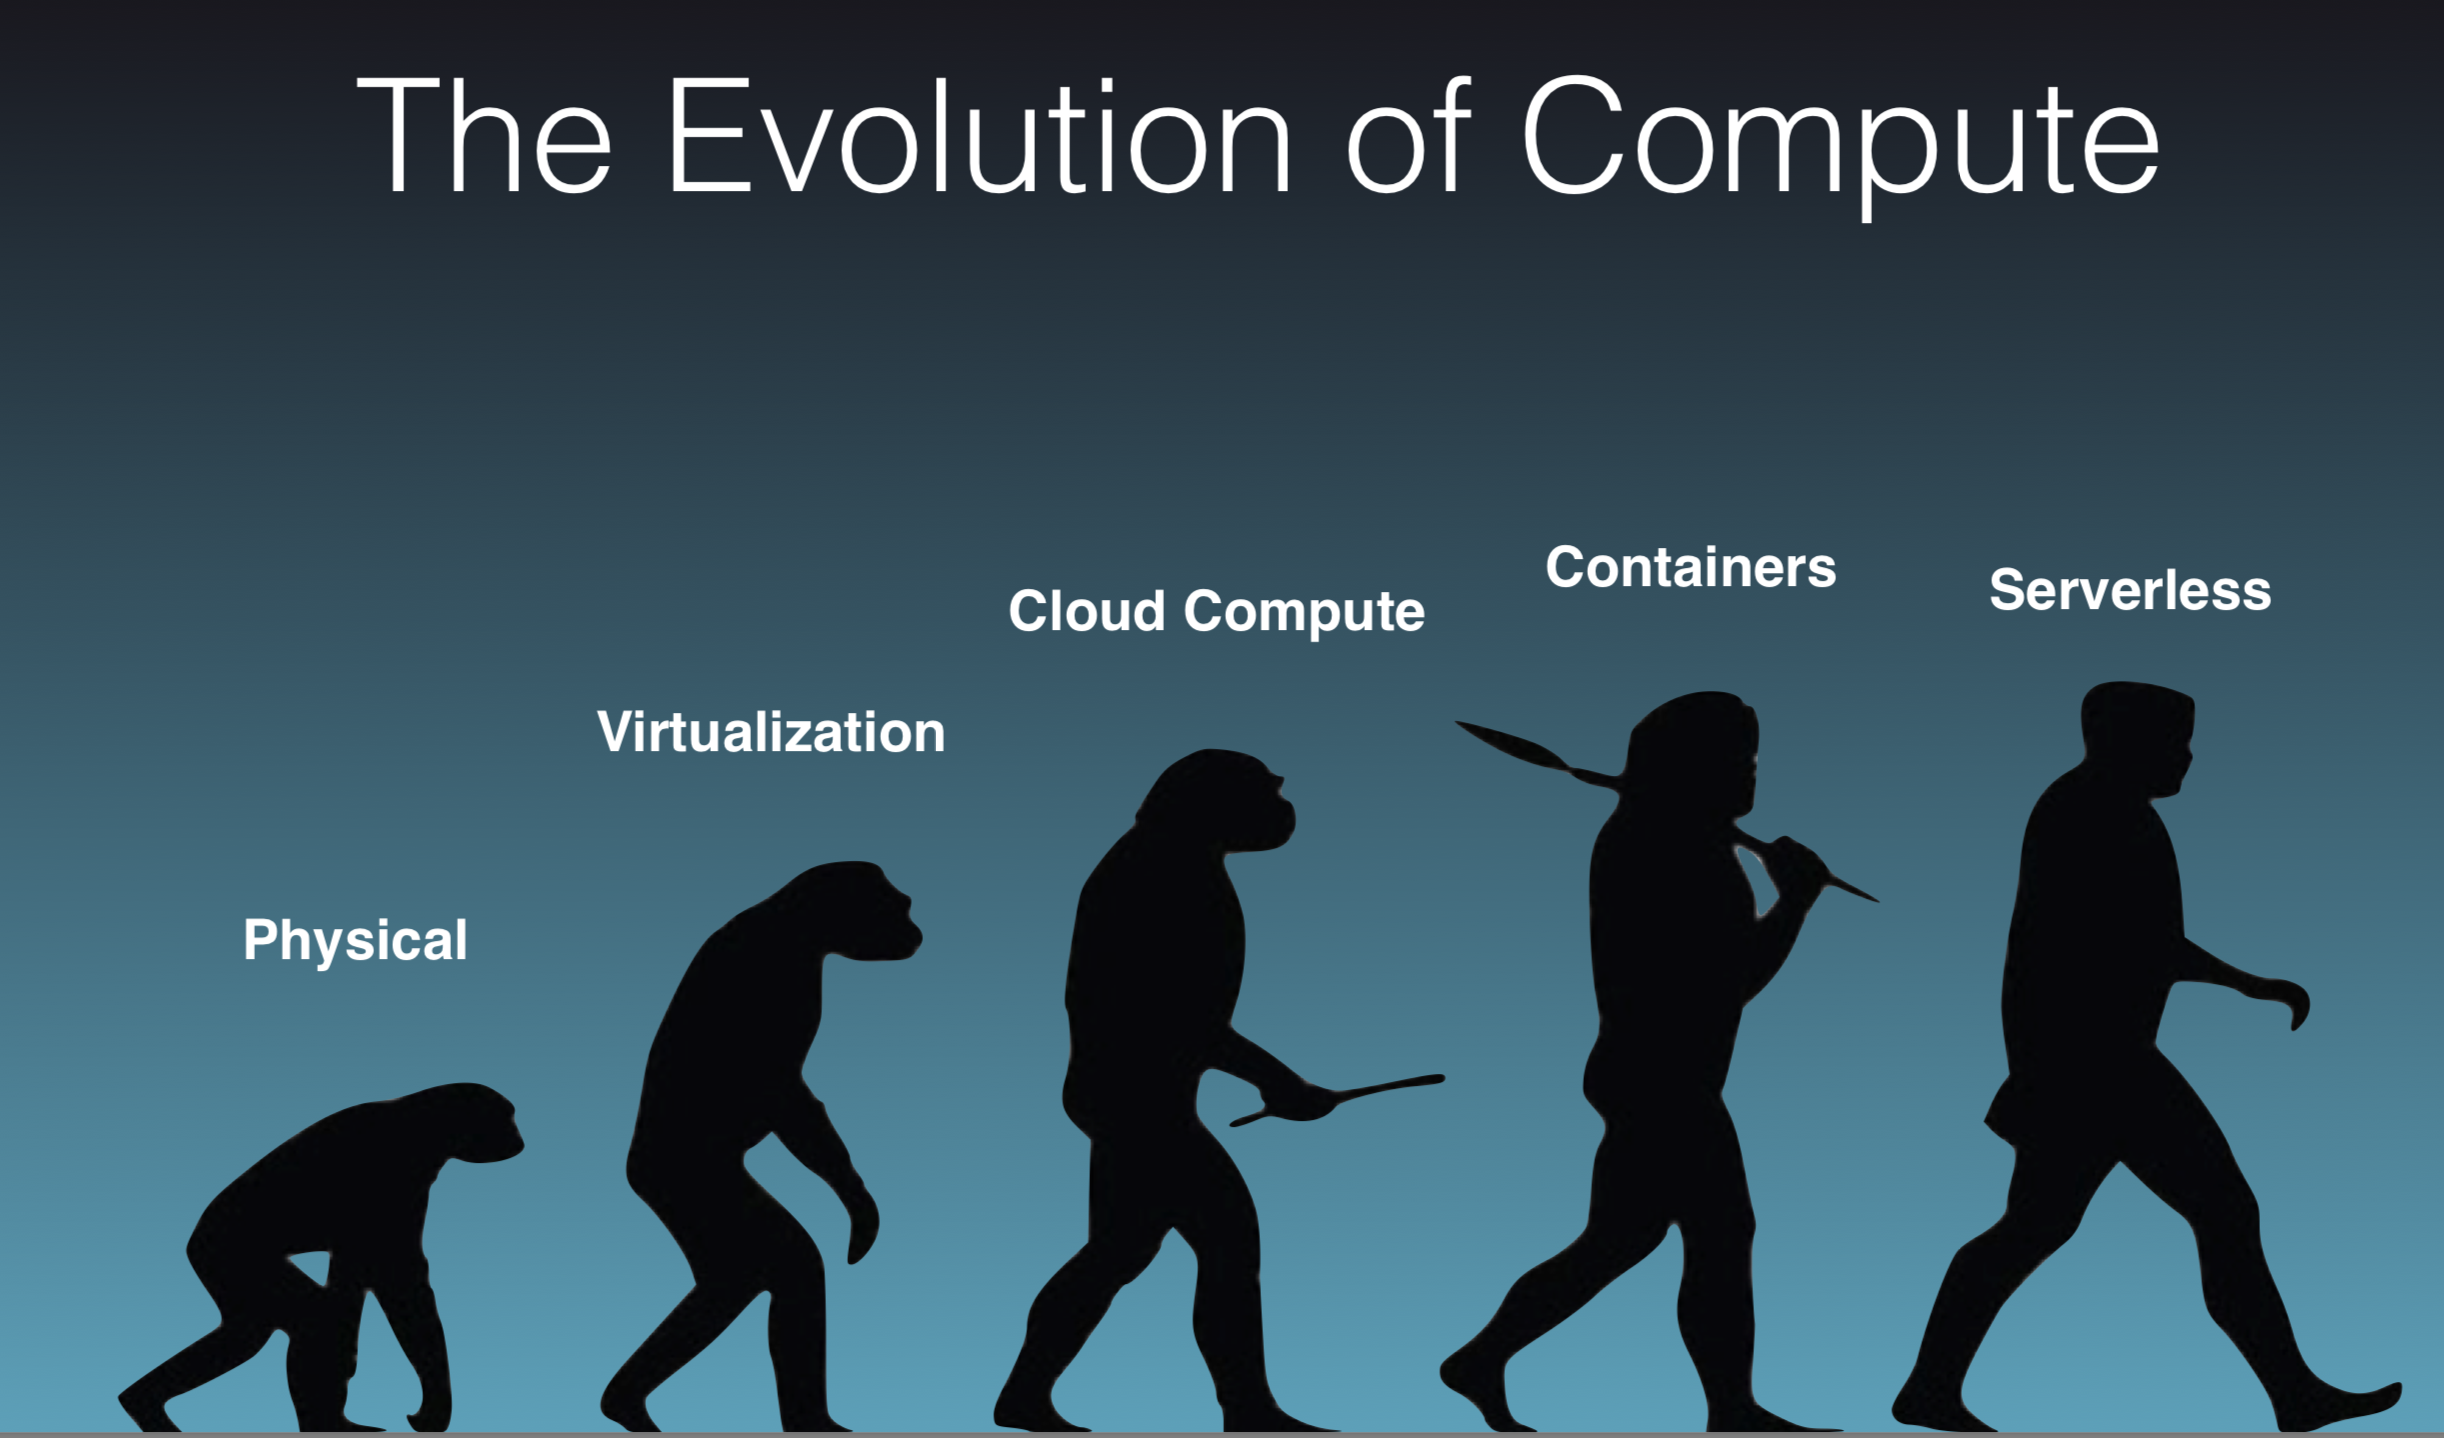 evolutionofcloud